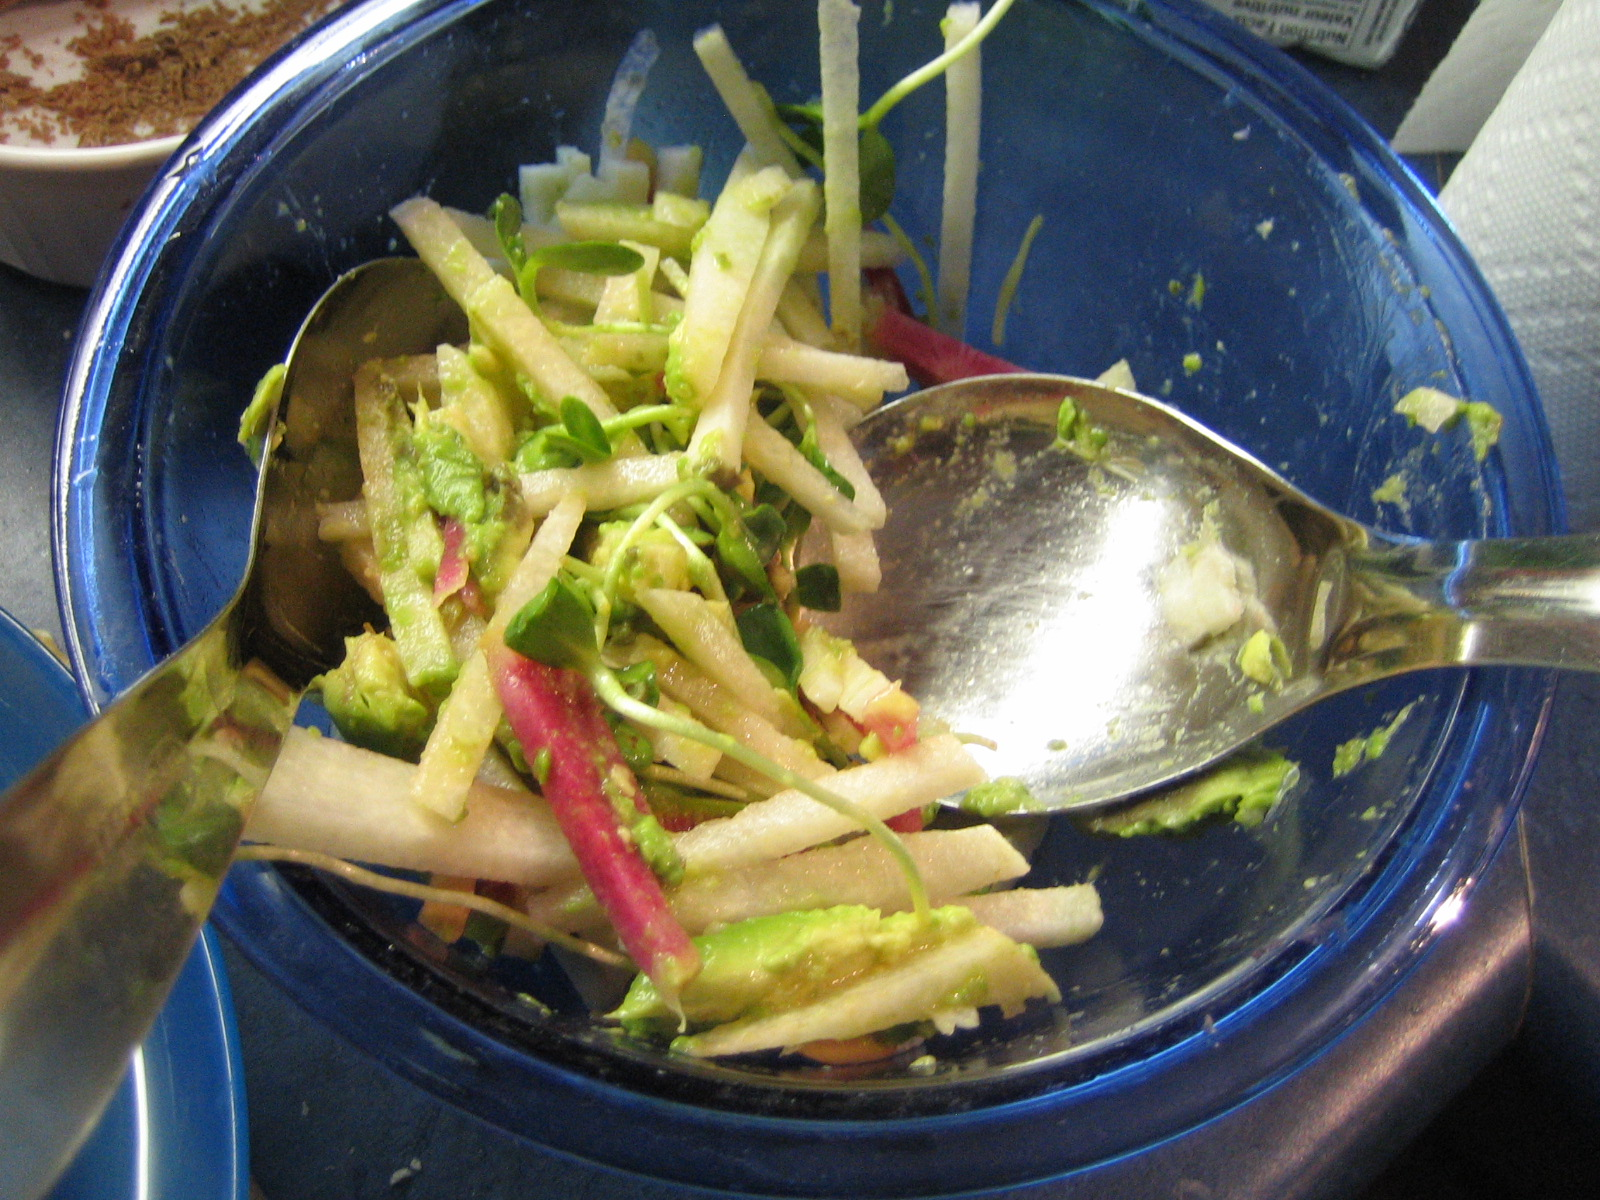 Deborah Madison's Jicama, Orange, and Watermelon Radish Salad